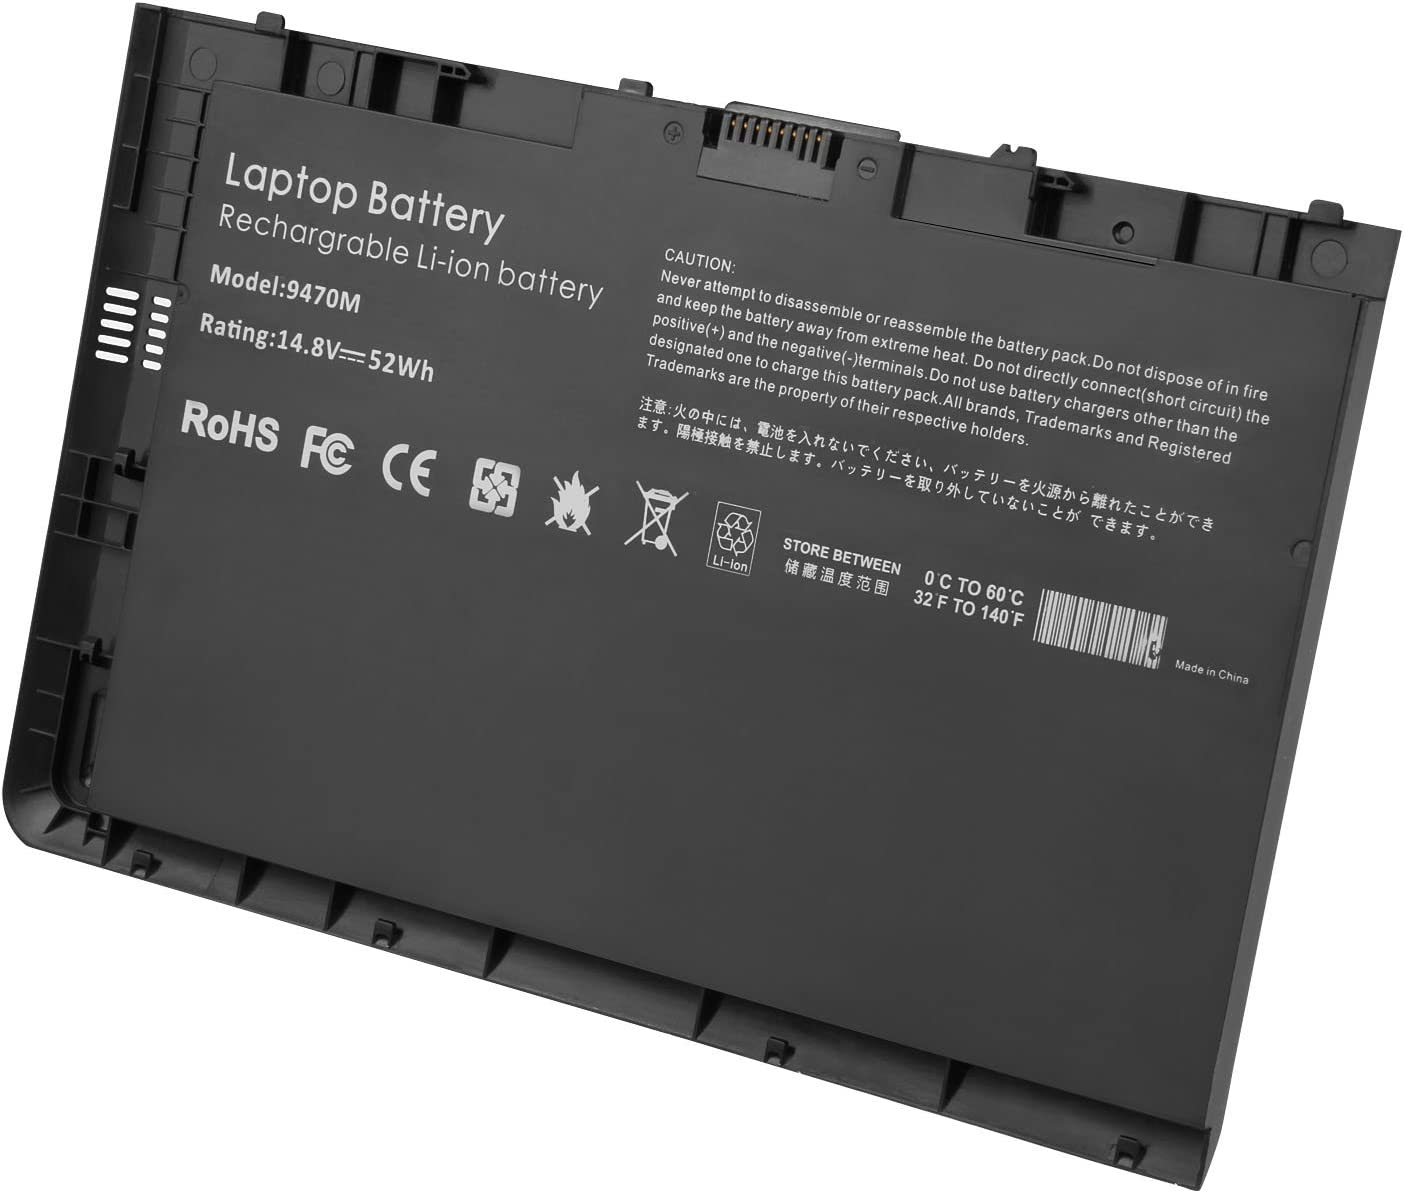 ARyee BT04XL 687945-001 Laptop Battery for Hp Elitebook 9470 9470m 687945-001 687517-241 687517-171 BT04 BT04XL BA06 BA06XL H4q47aa H4q48aa HSTNN-IB3Z HSTNN-I10C HSTNN-DB3Z